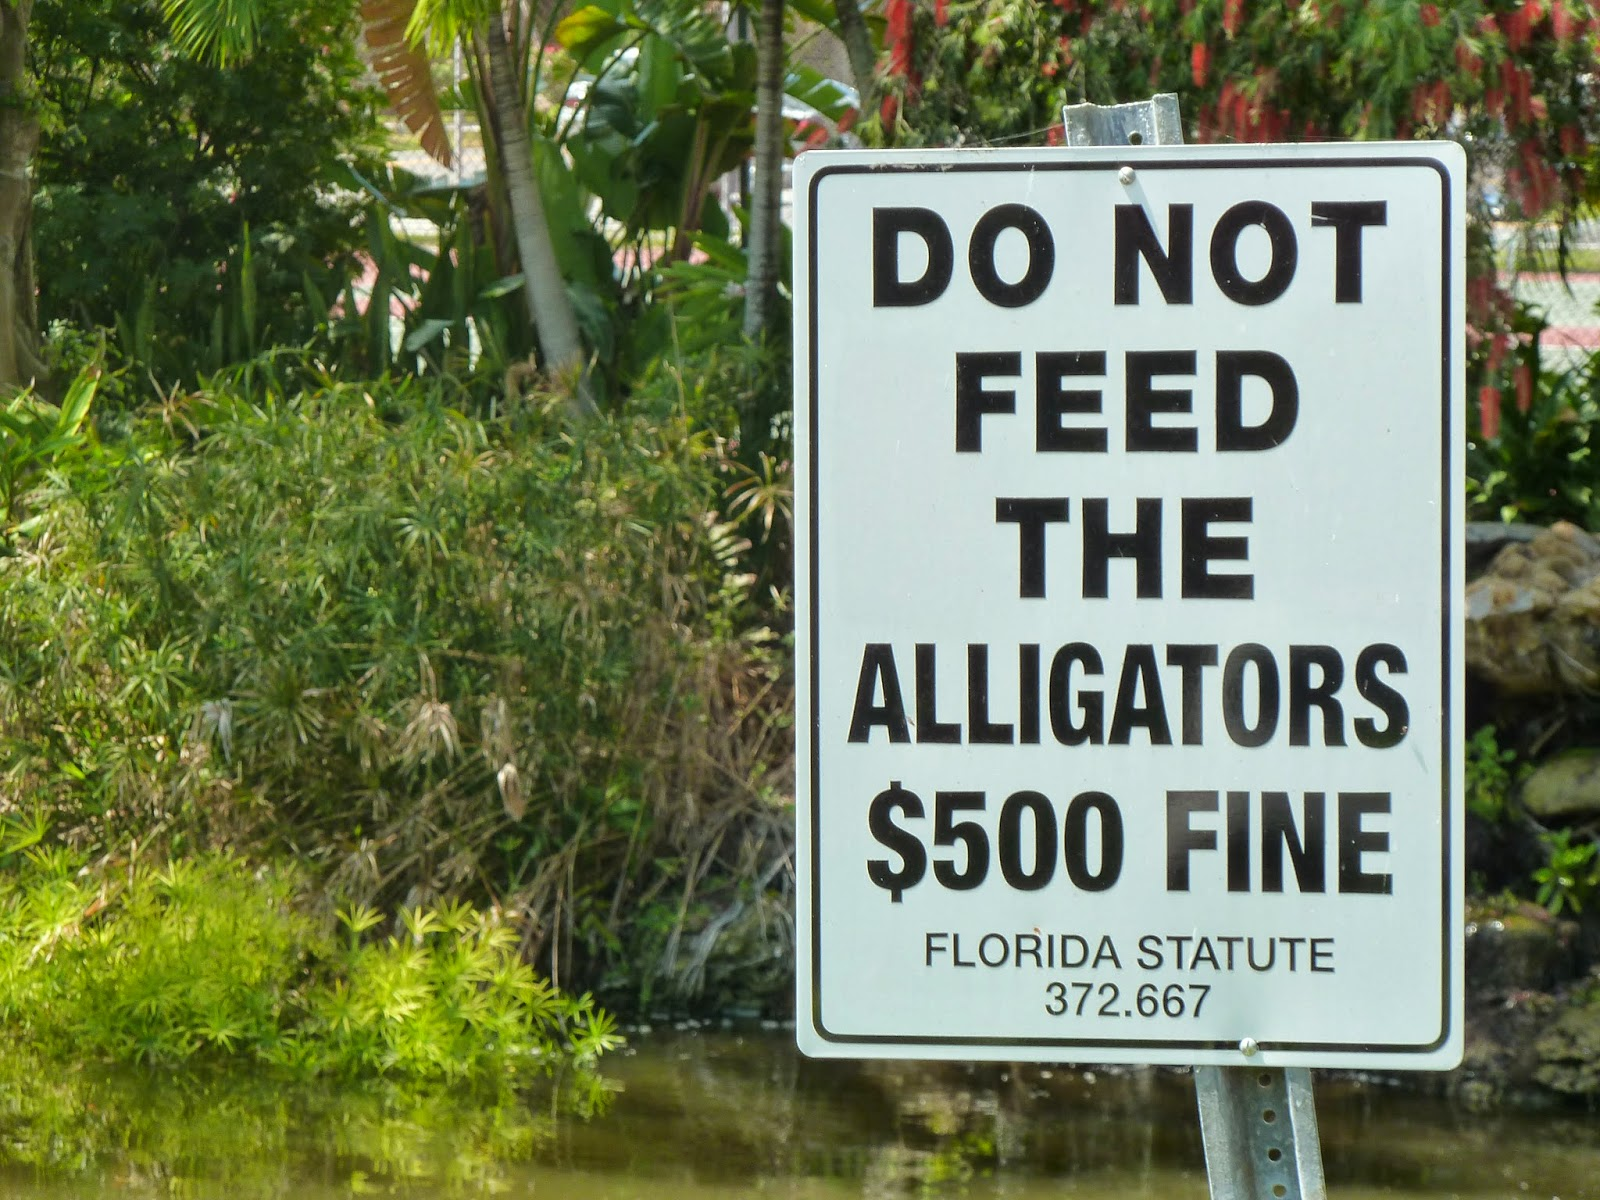 A sign in Sanibel, Fla. warning people not to feed the alligators. Photo credit: M. Ciavardini